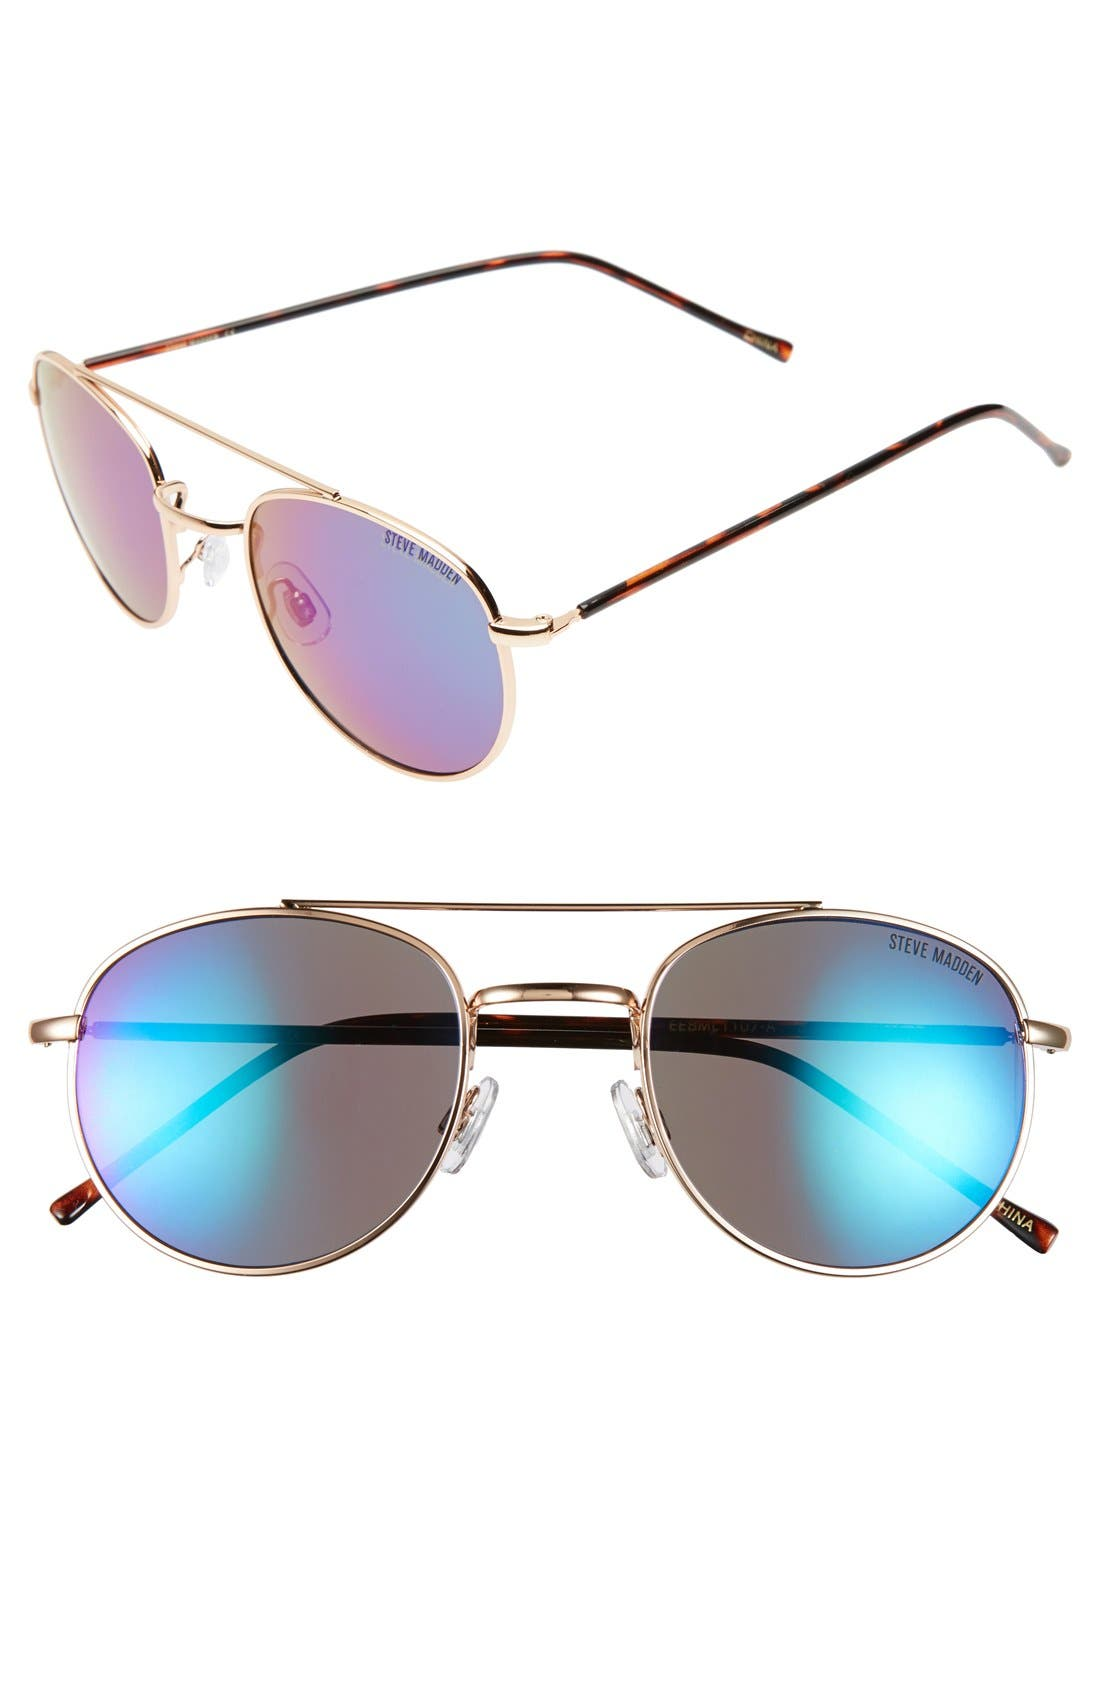 Main Image - Steve Madden 52mm Mirror Lens Aviator Sunglasses